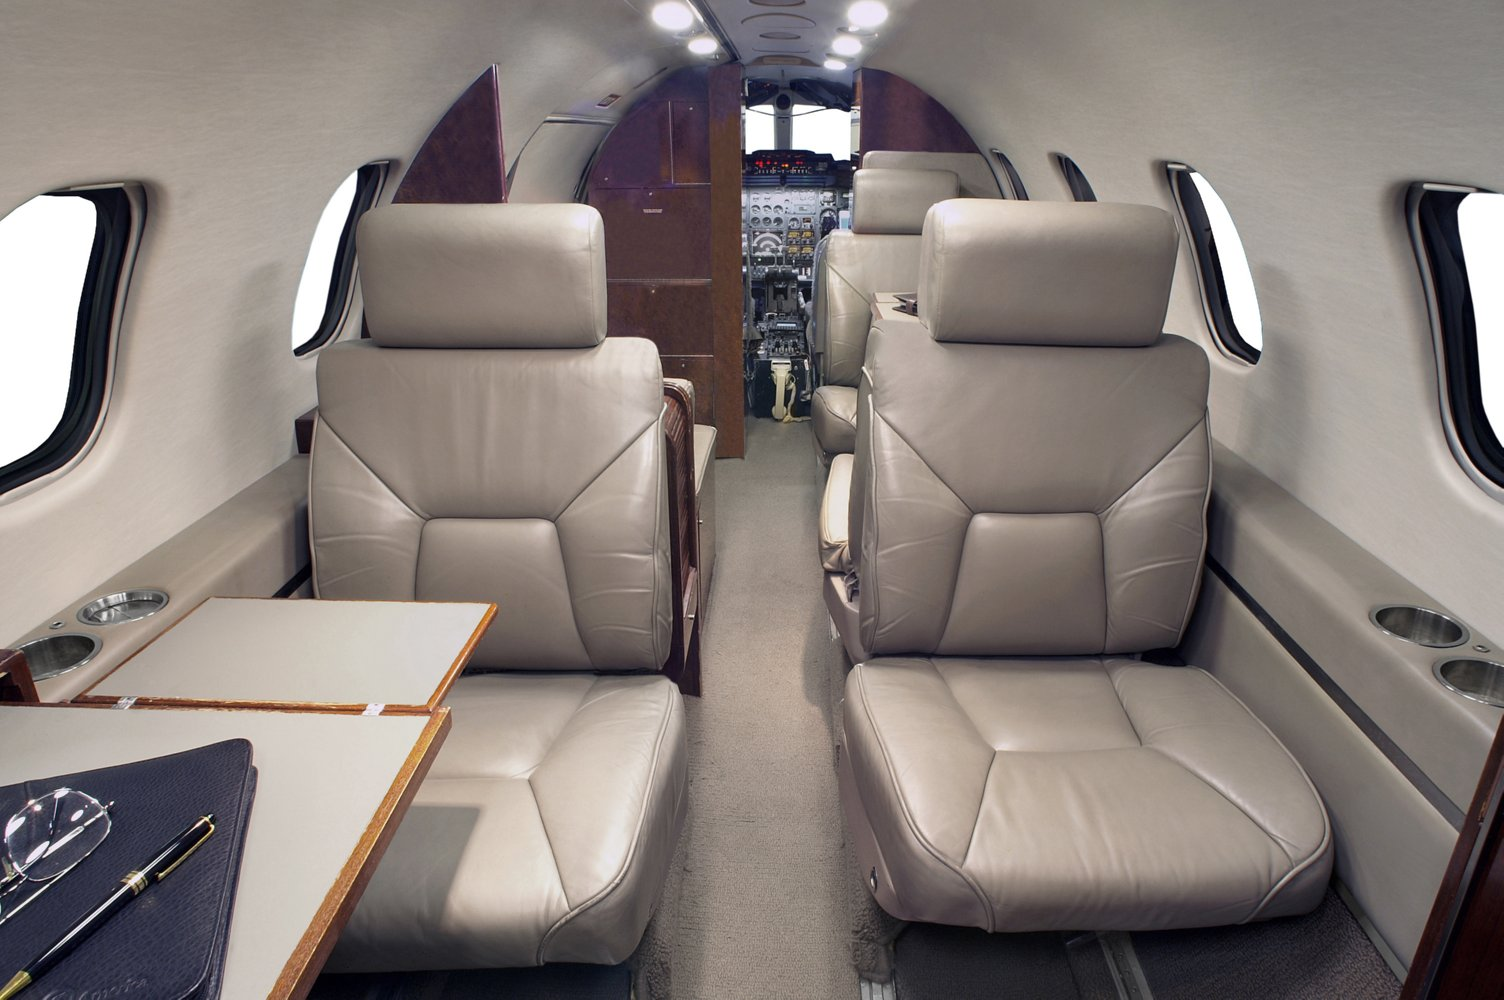 Light Jets- Jet Costs From $2,100 To $2,700 Hourly